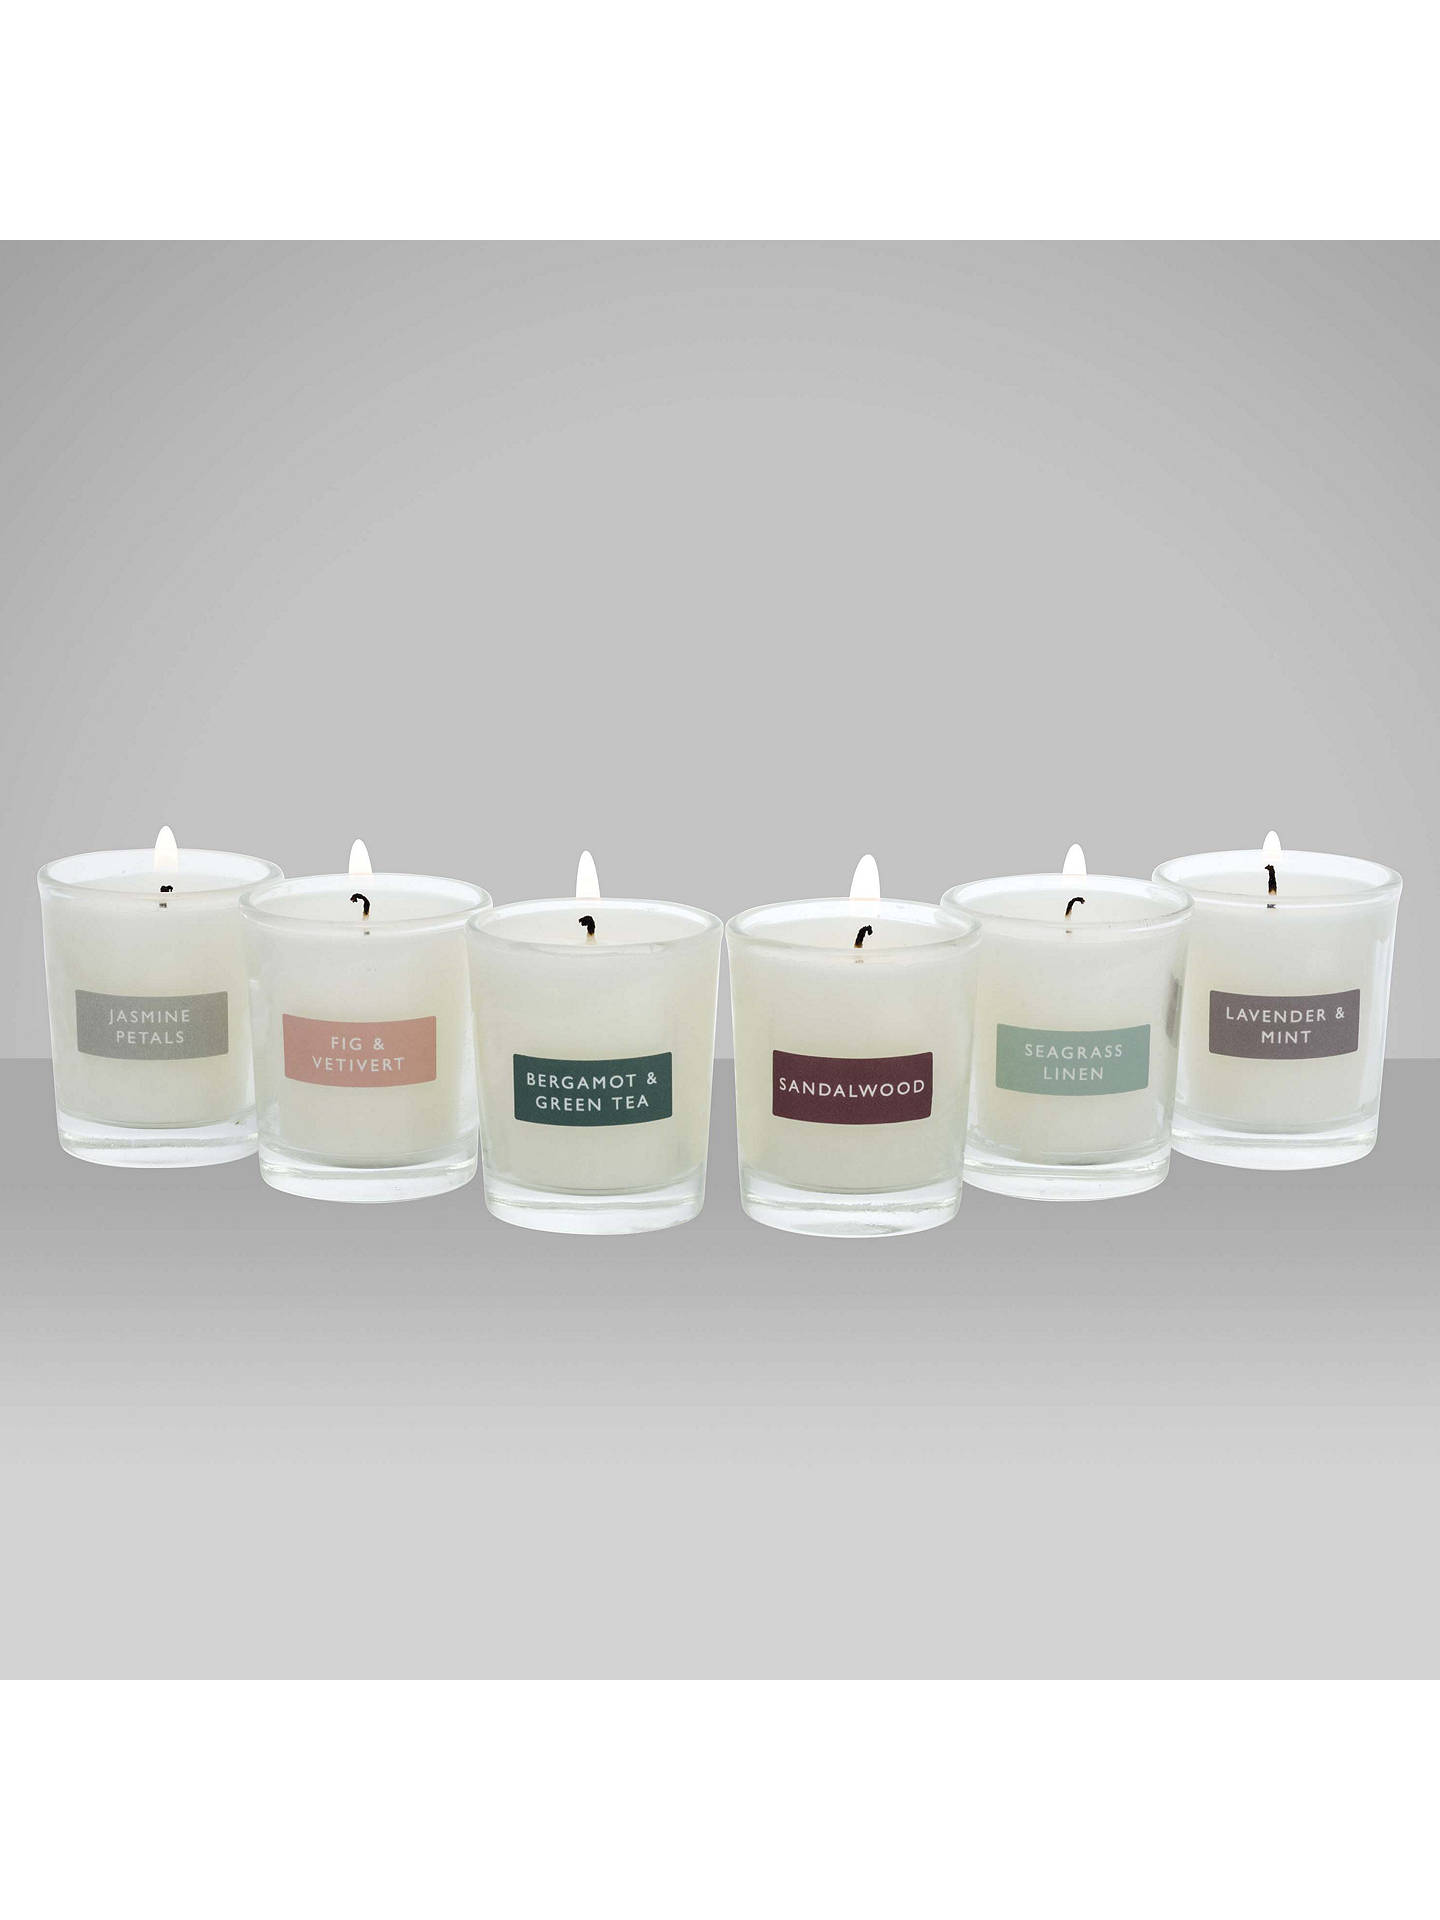 BuyJohn Lewis & Partners Mini Candle Gift Set Online at johnlewis.com